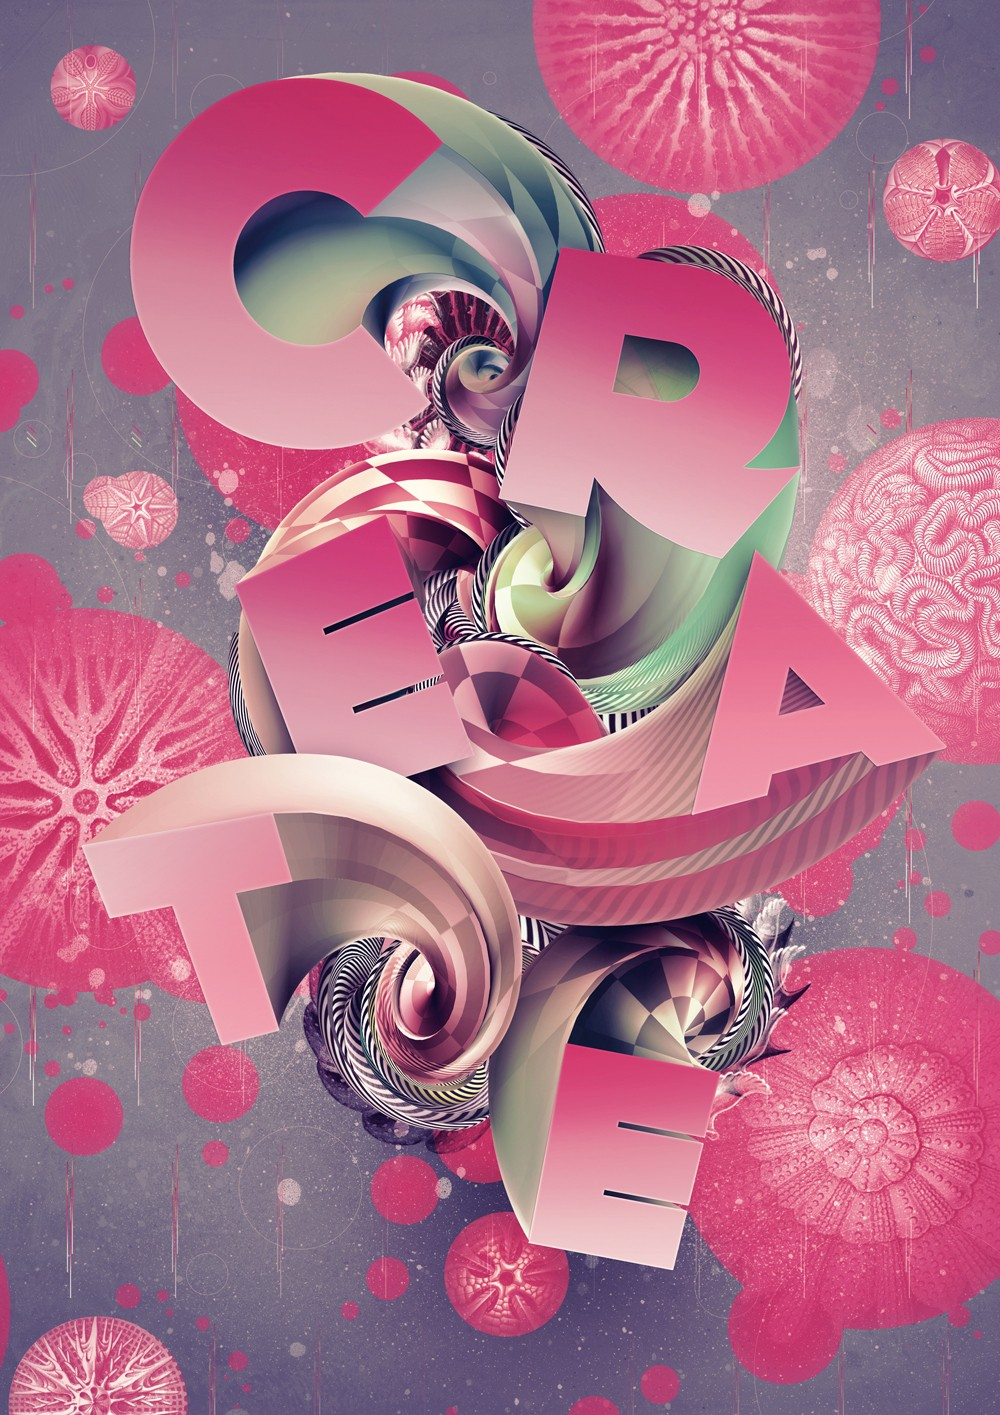 Photoshop tutorial create 3d type art using photoshop cs5 next step baditri Images